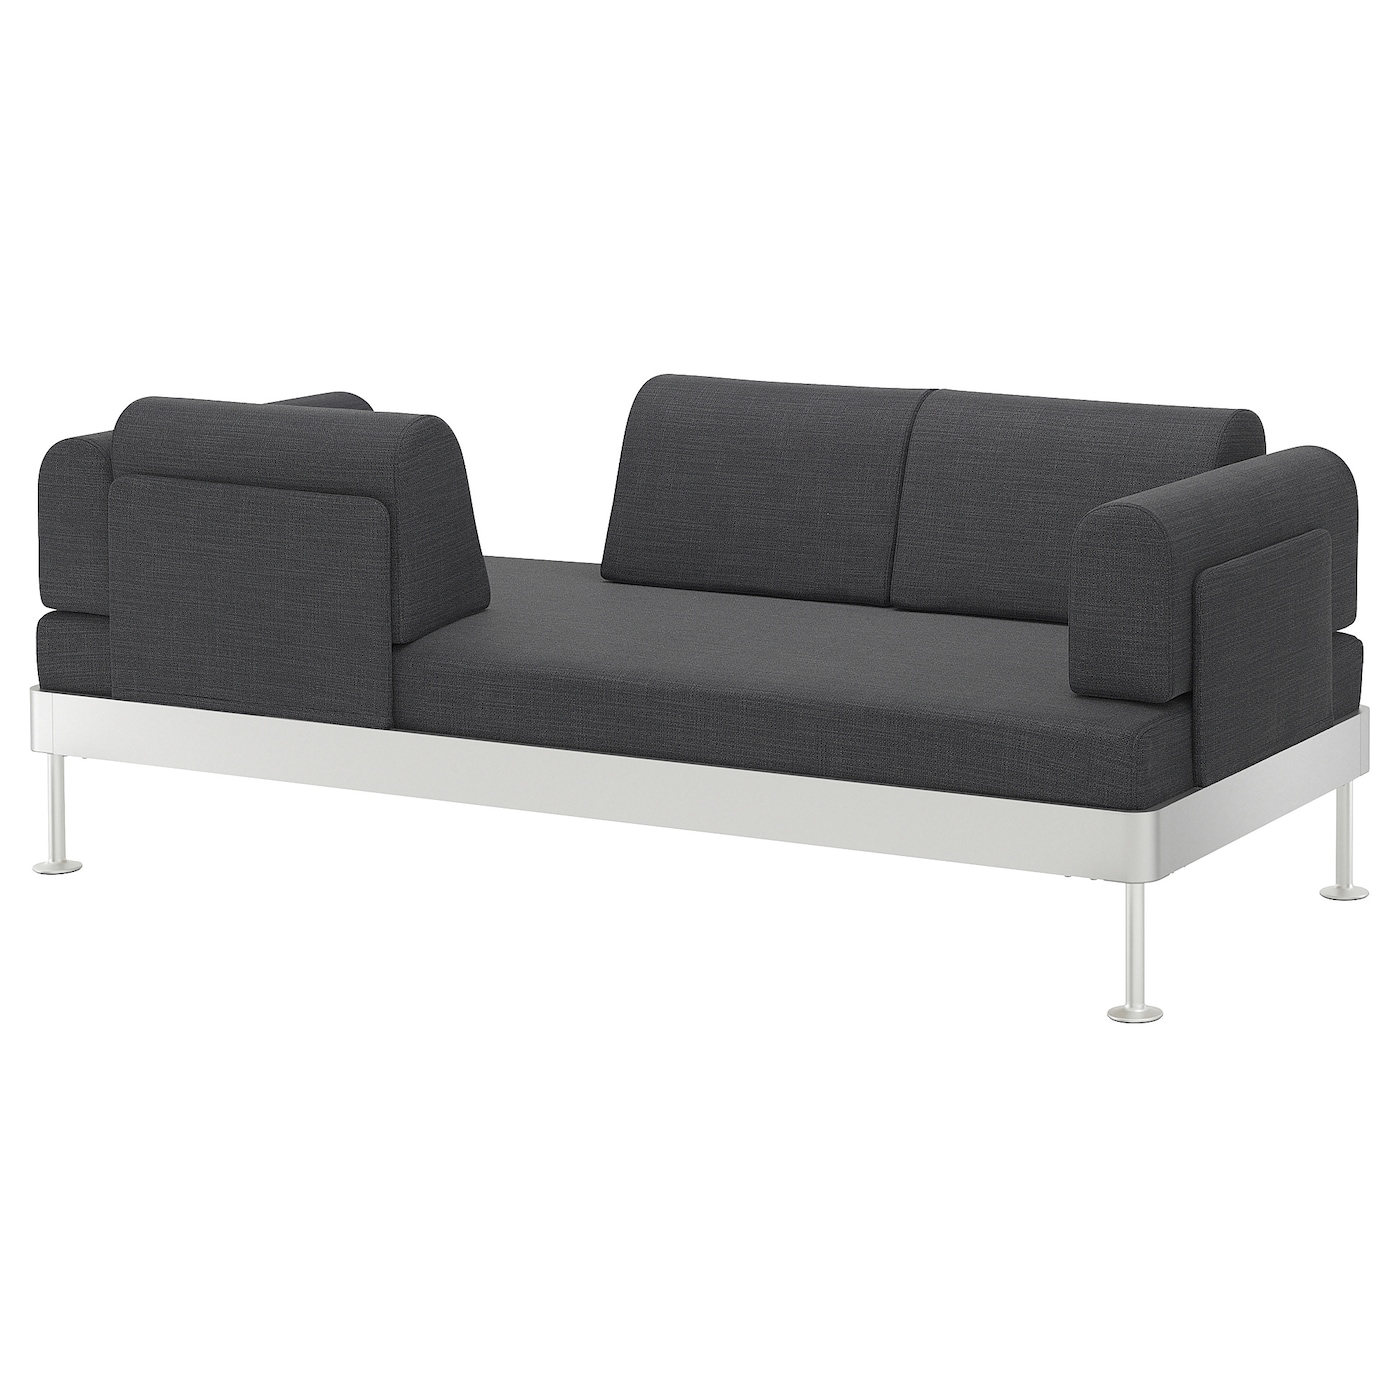 Remarkable Sofa Köln Photo Of Ikea Delaktig 3-seat The Cover Is Easy